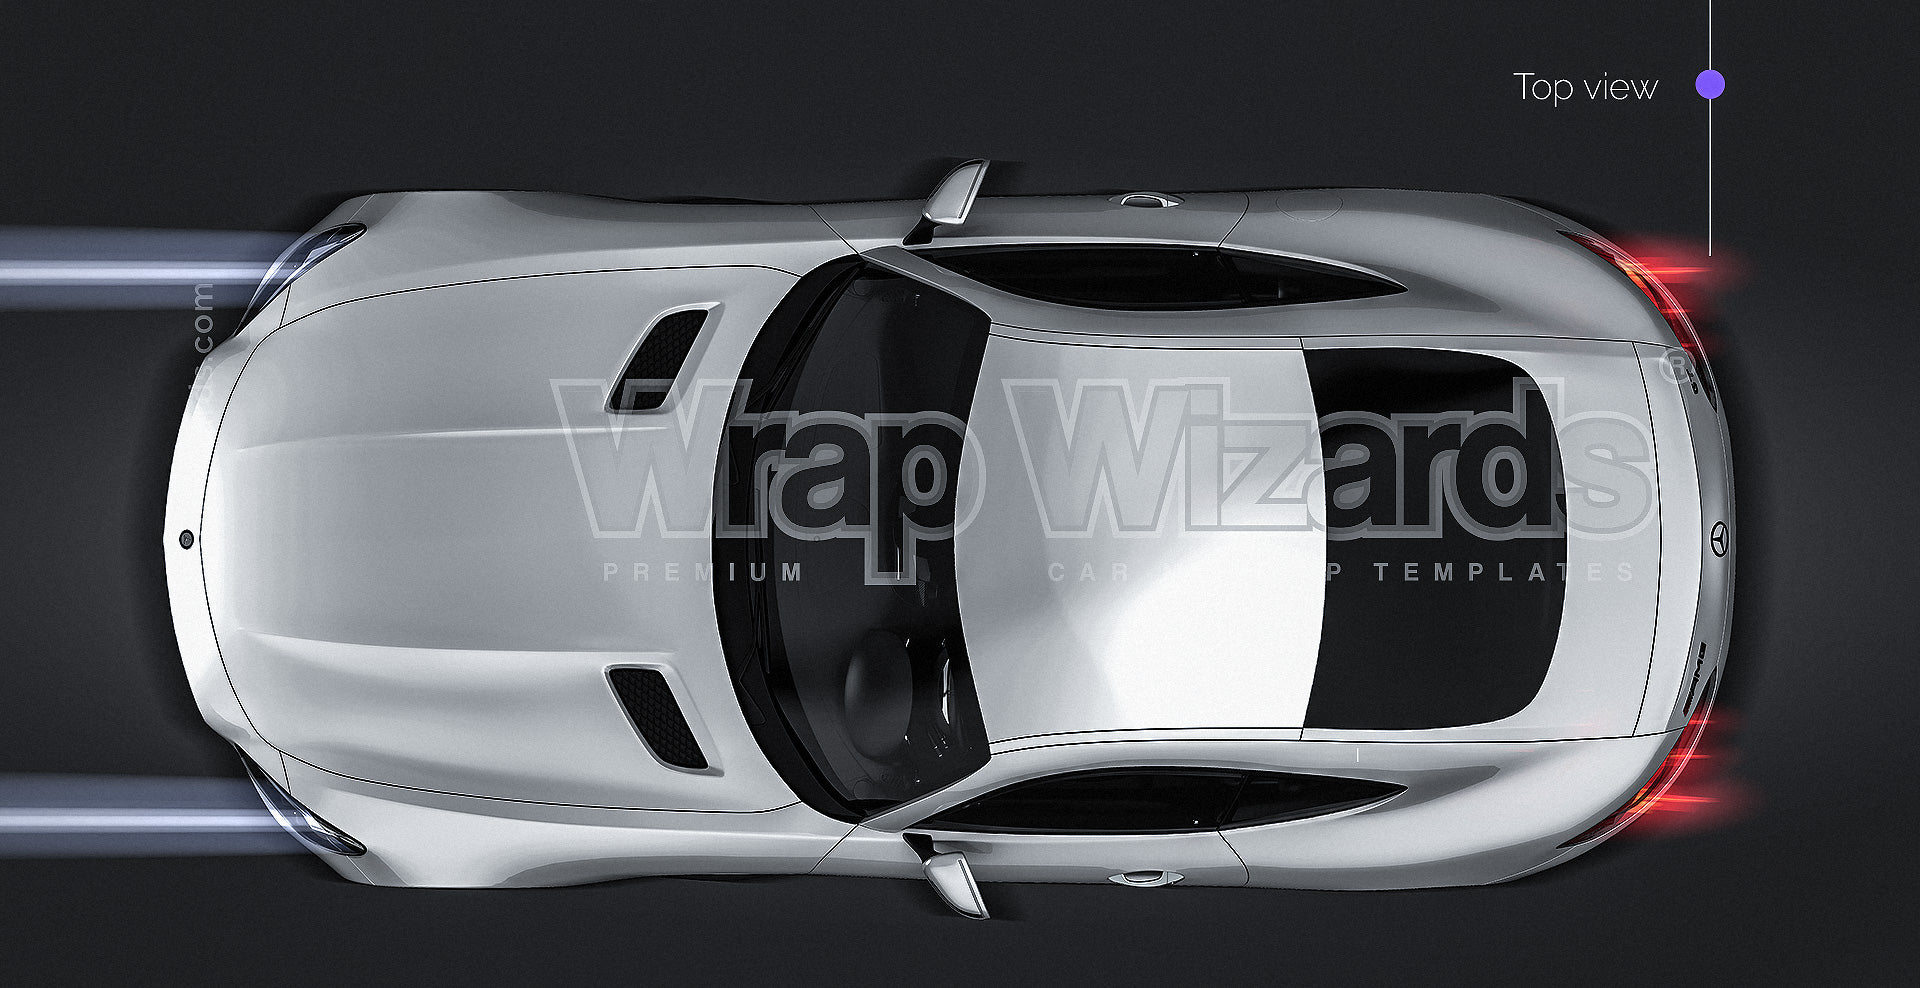 Mercedes-Benz AMG GT 2016 all sides Car Mockup Template.psd